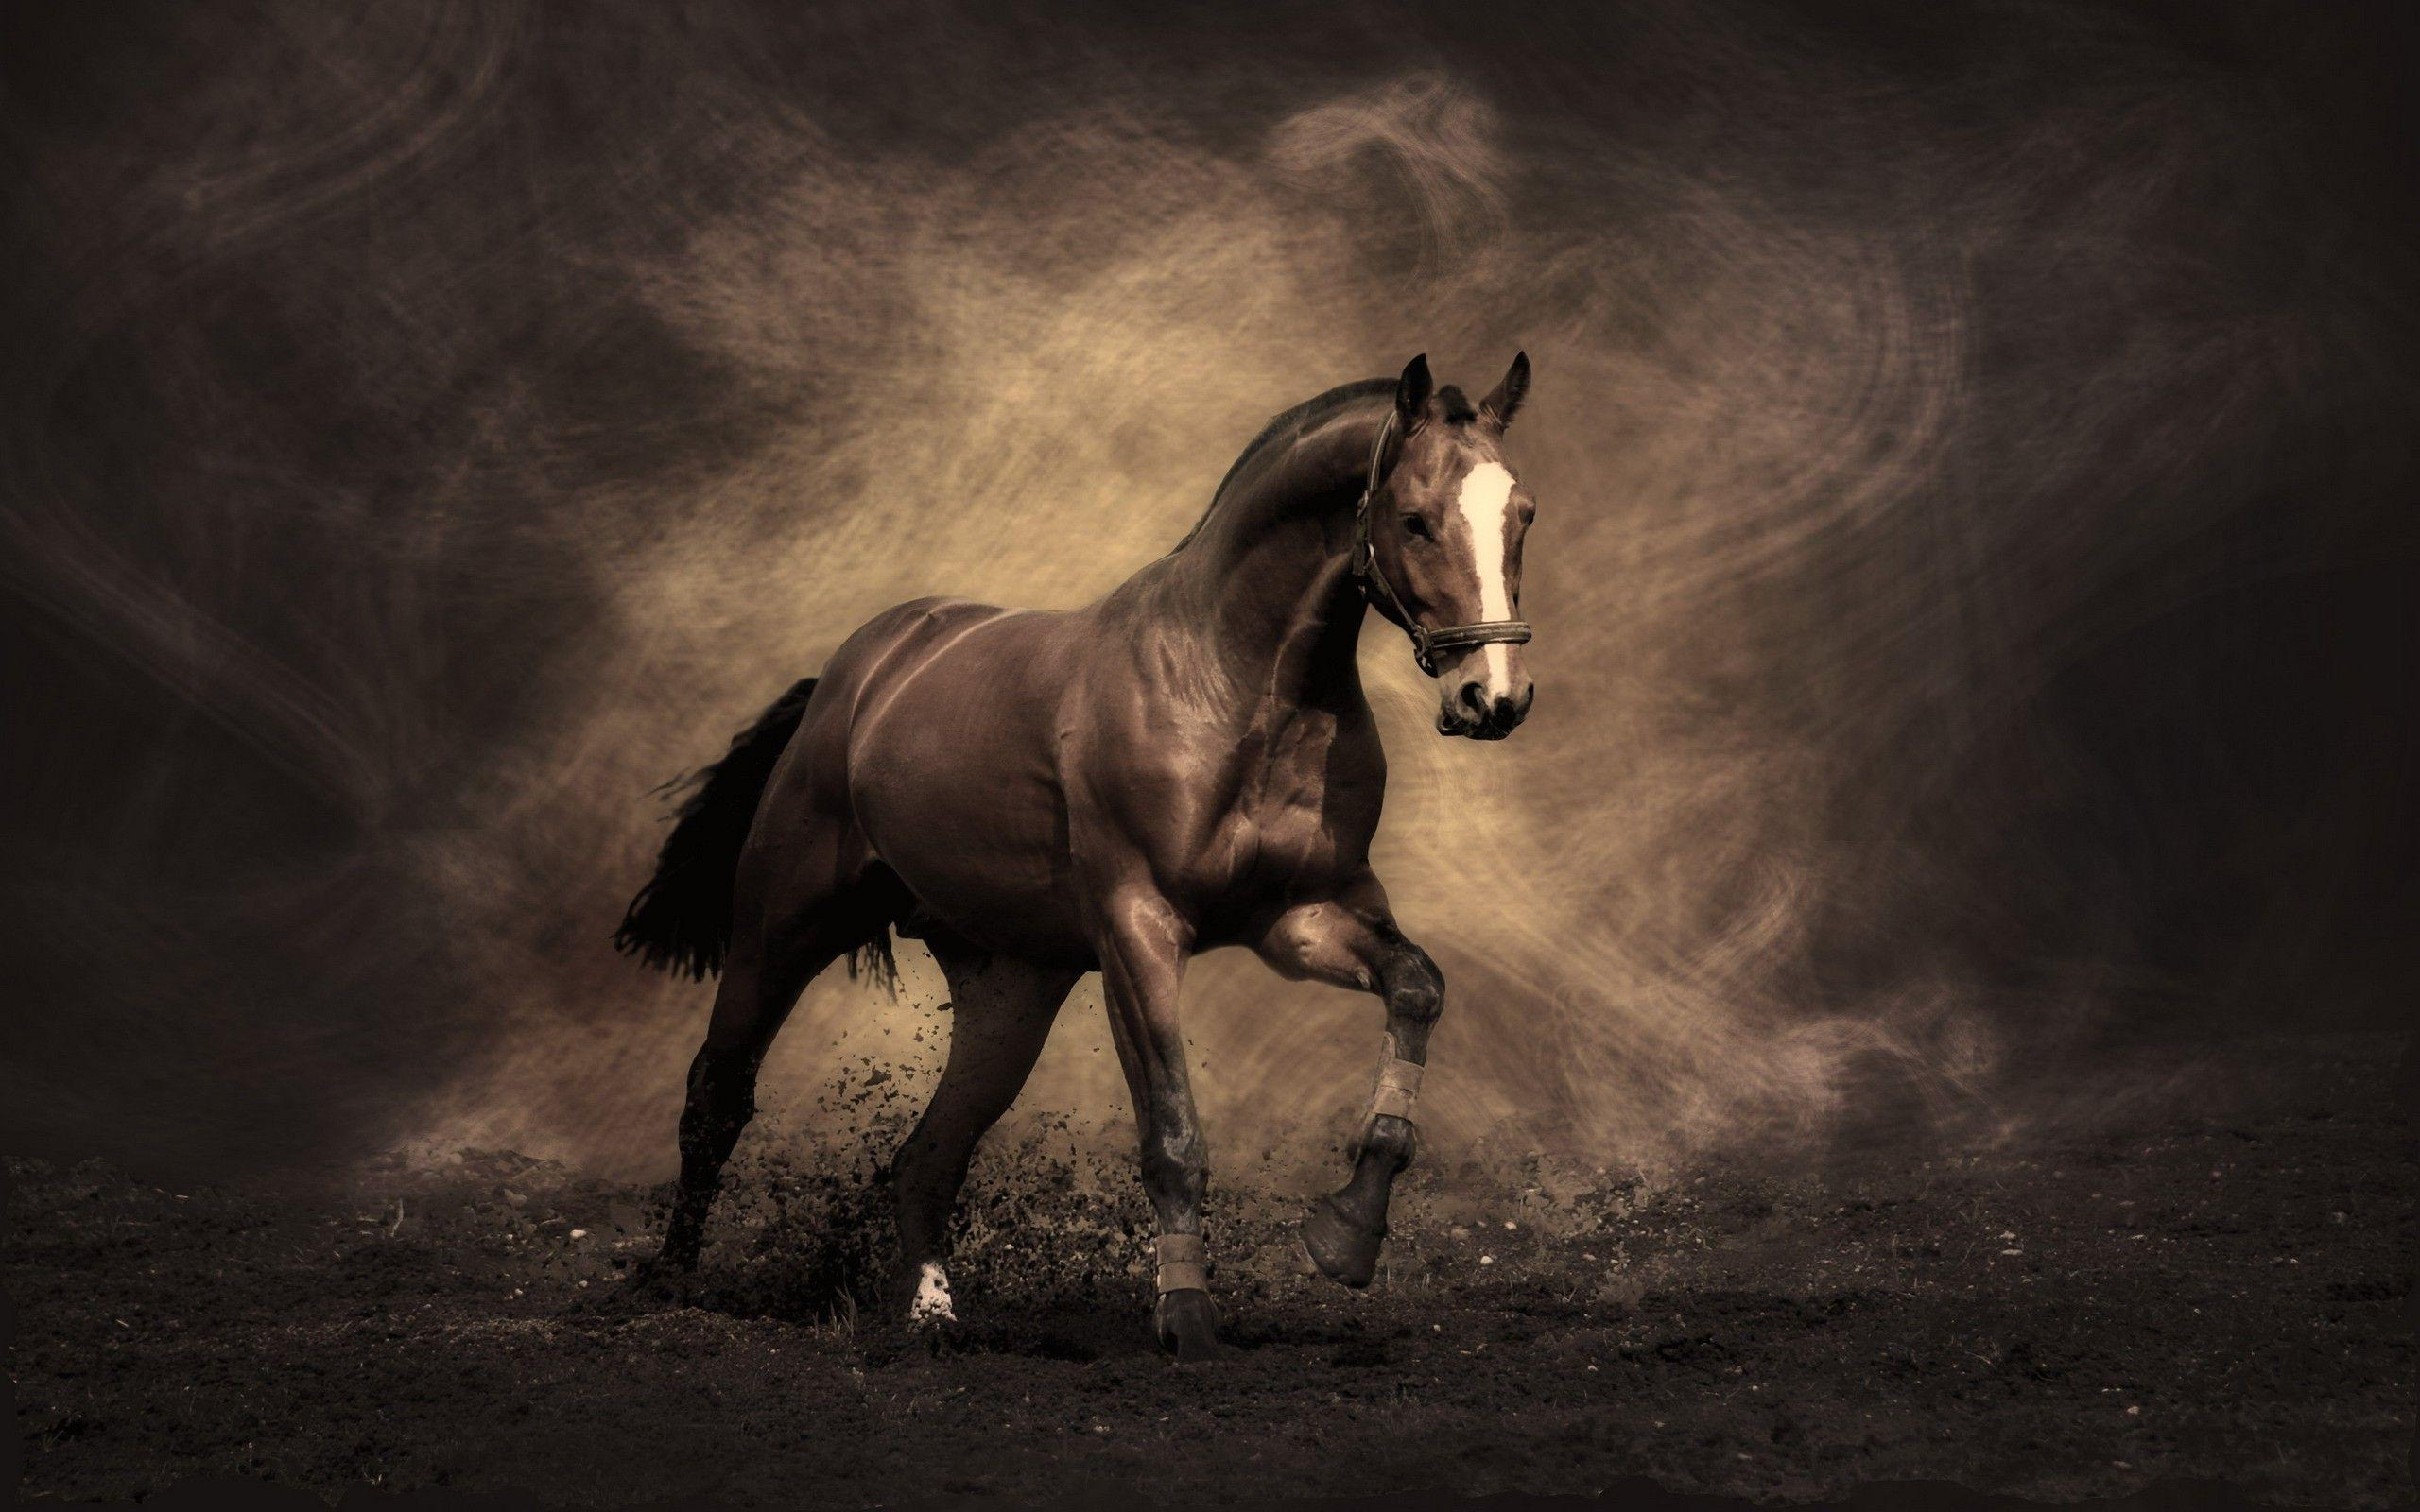 Horse Wallpapers and Background Images   stmednet 2560x1600